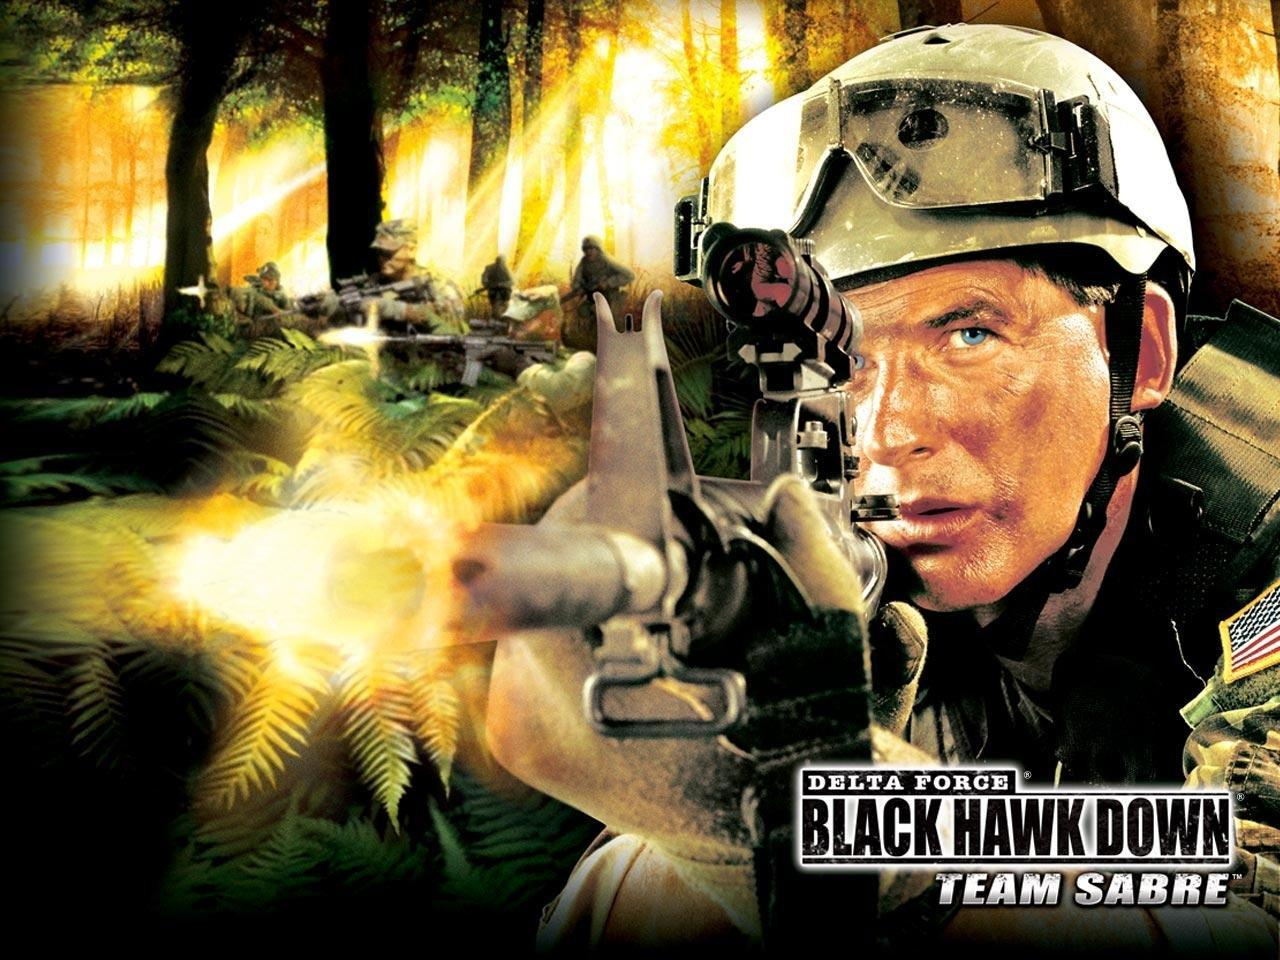 Обои Delta Force Black Hawk Down 1280x960